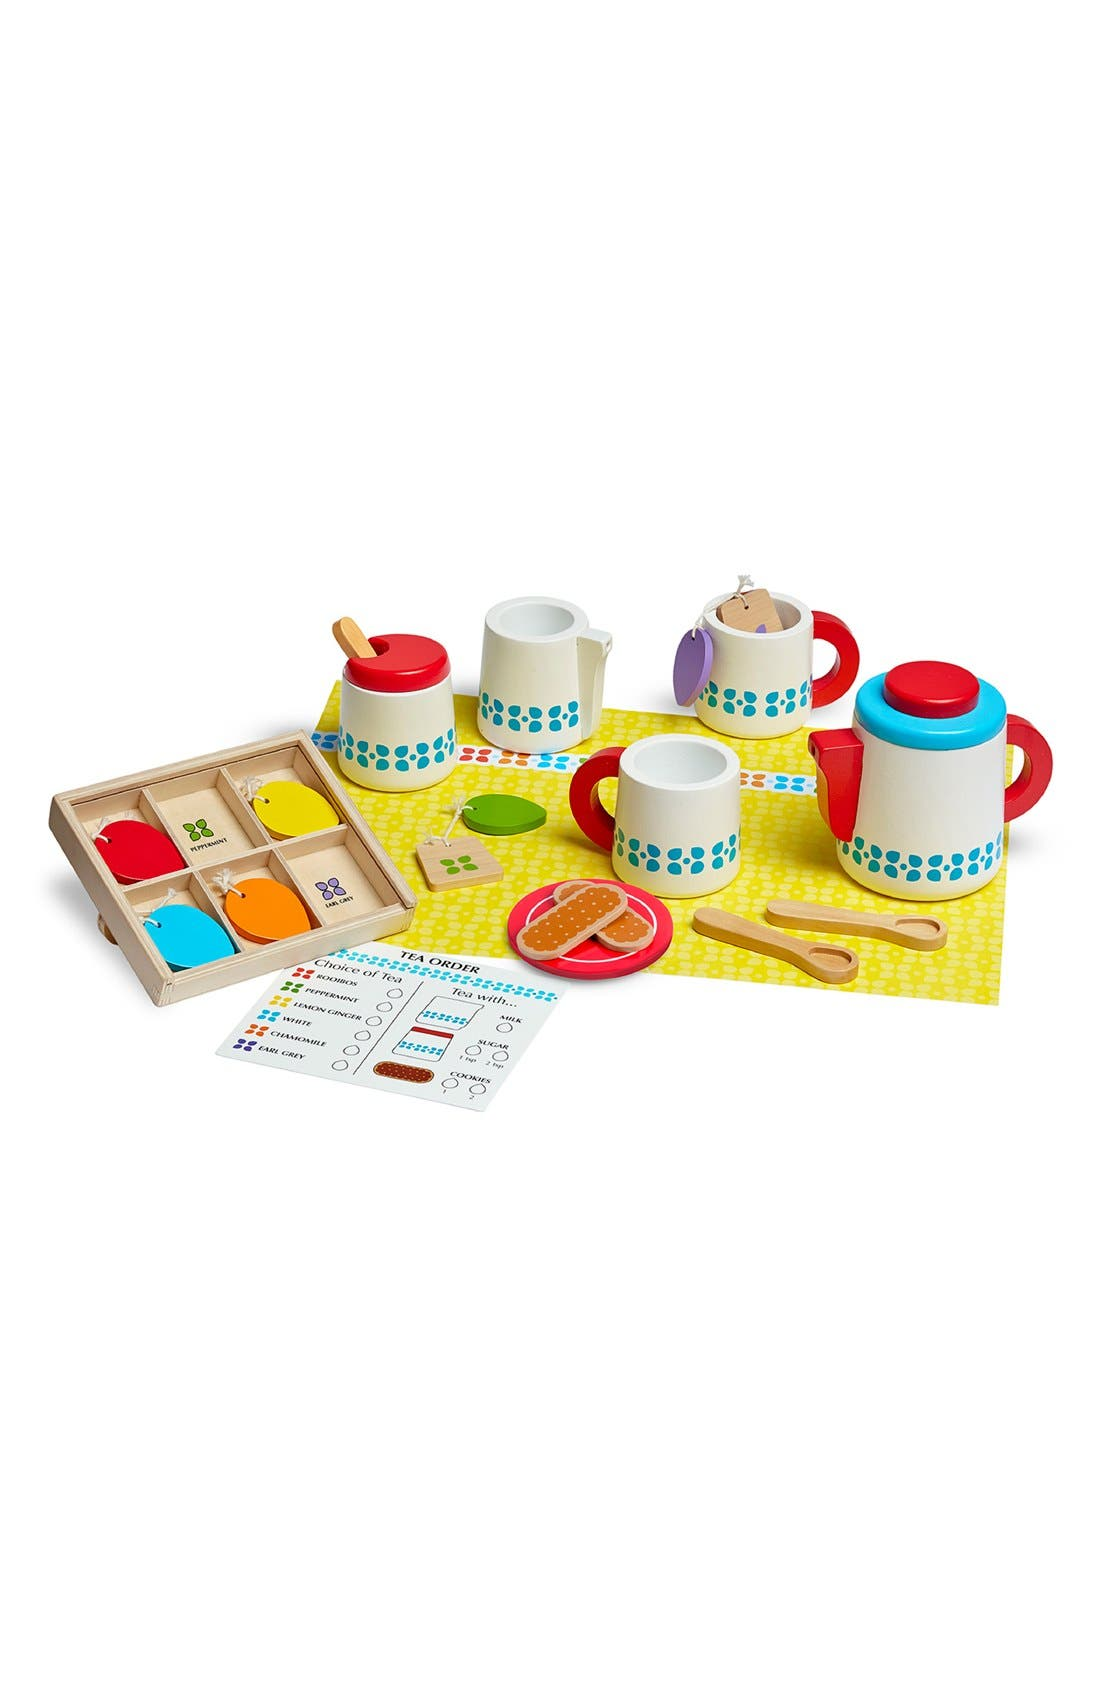 'Steep & Serve' Wooden Tea Set,                             Alternate thumbnail 2, color,                             MULTI